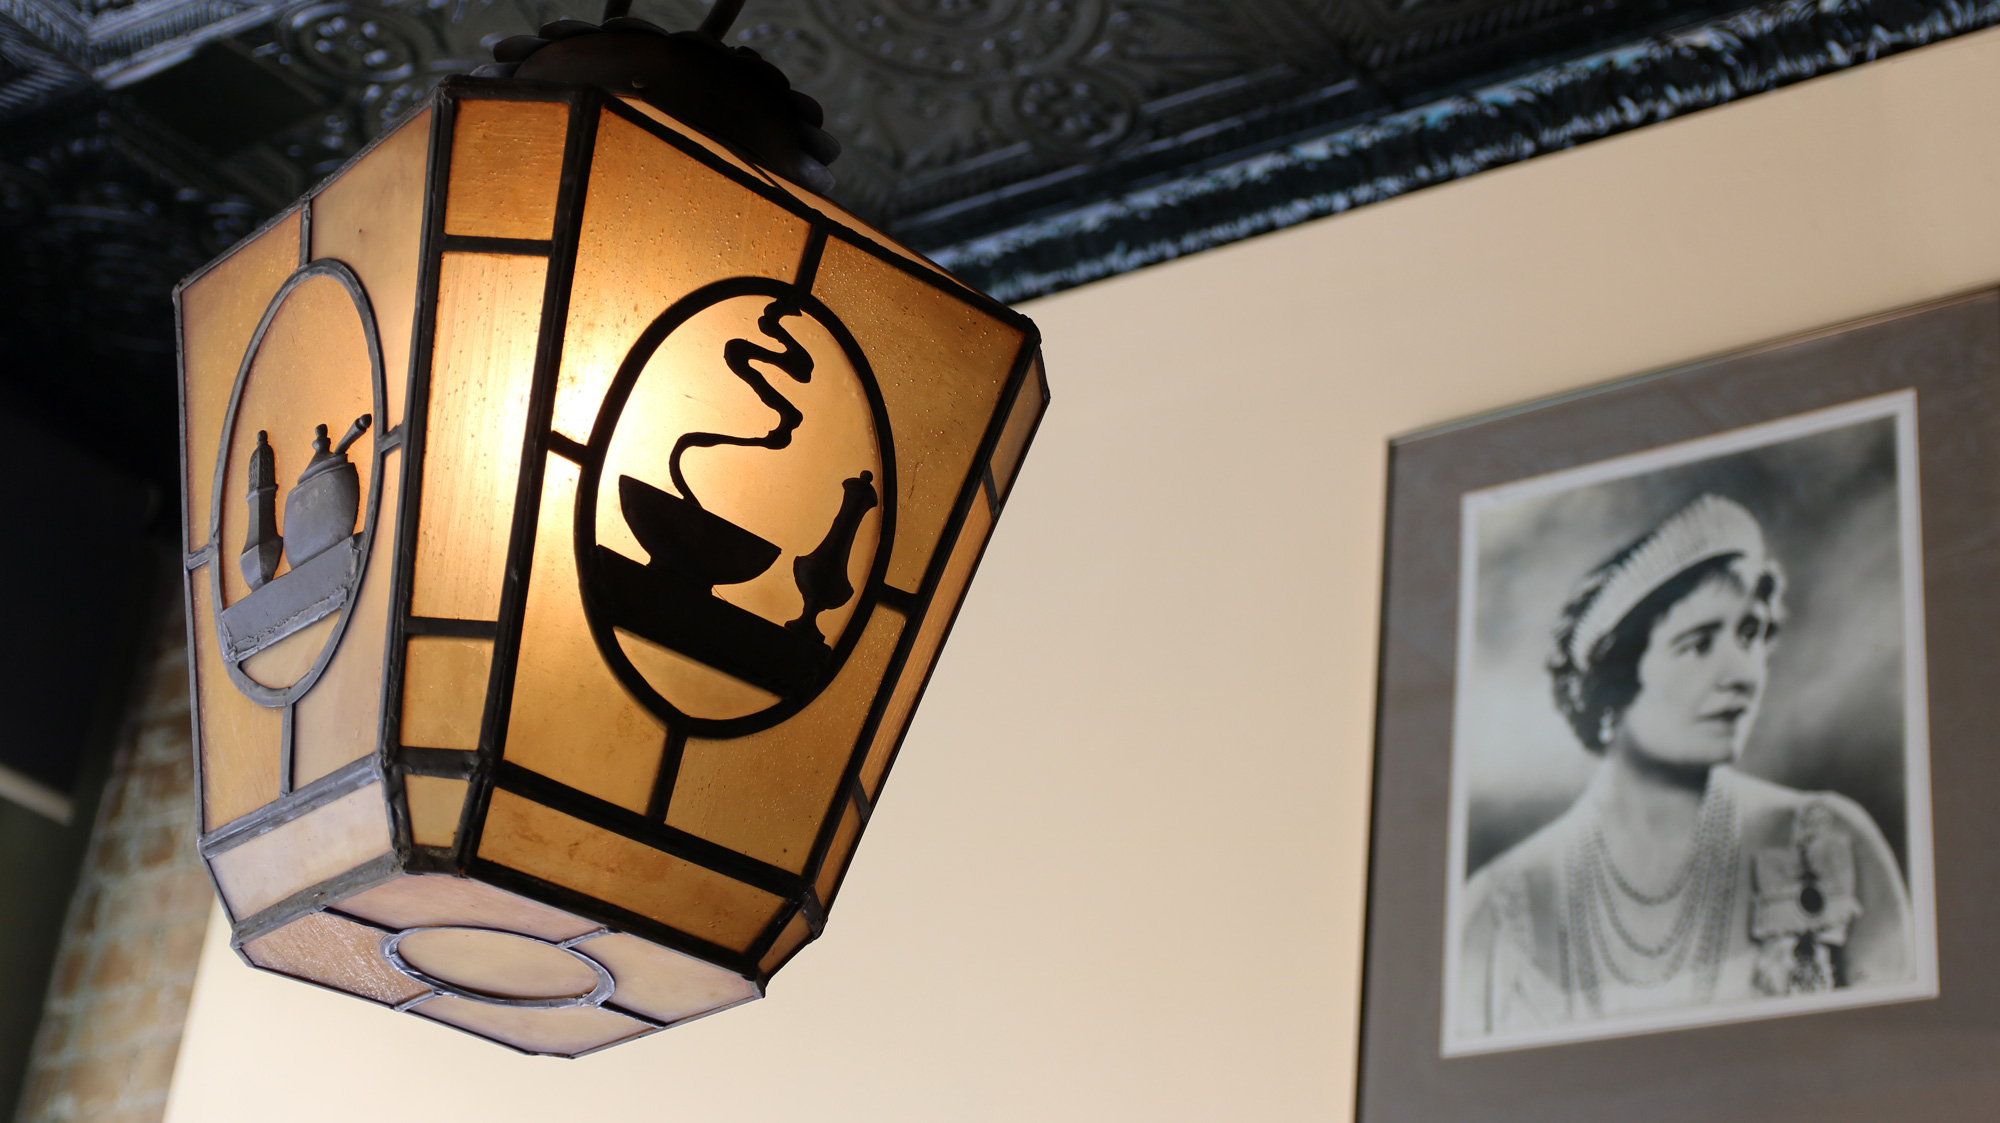 Antique café light hanging in front of one of the original photos of the Queen Mother that gave the restaurant its name